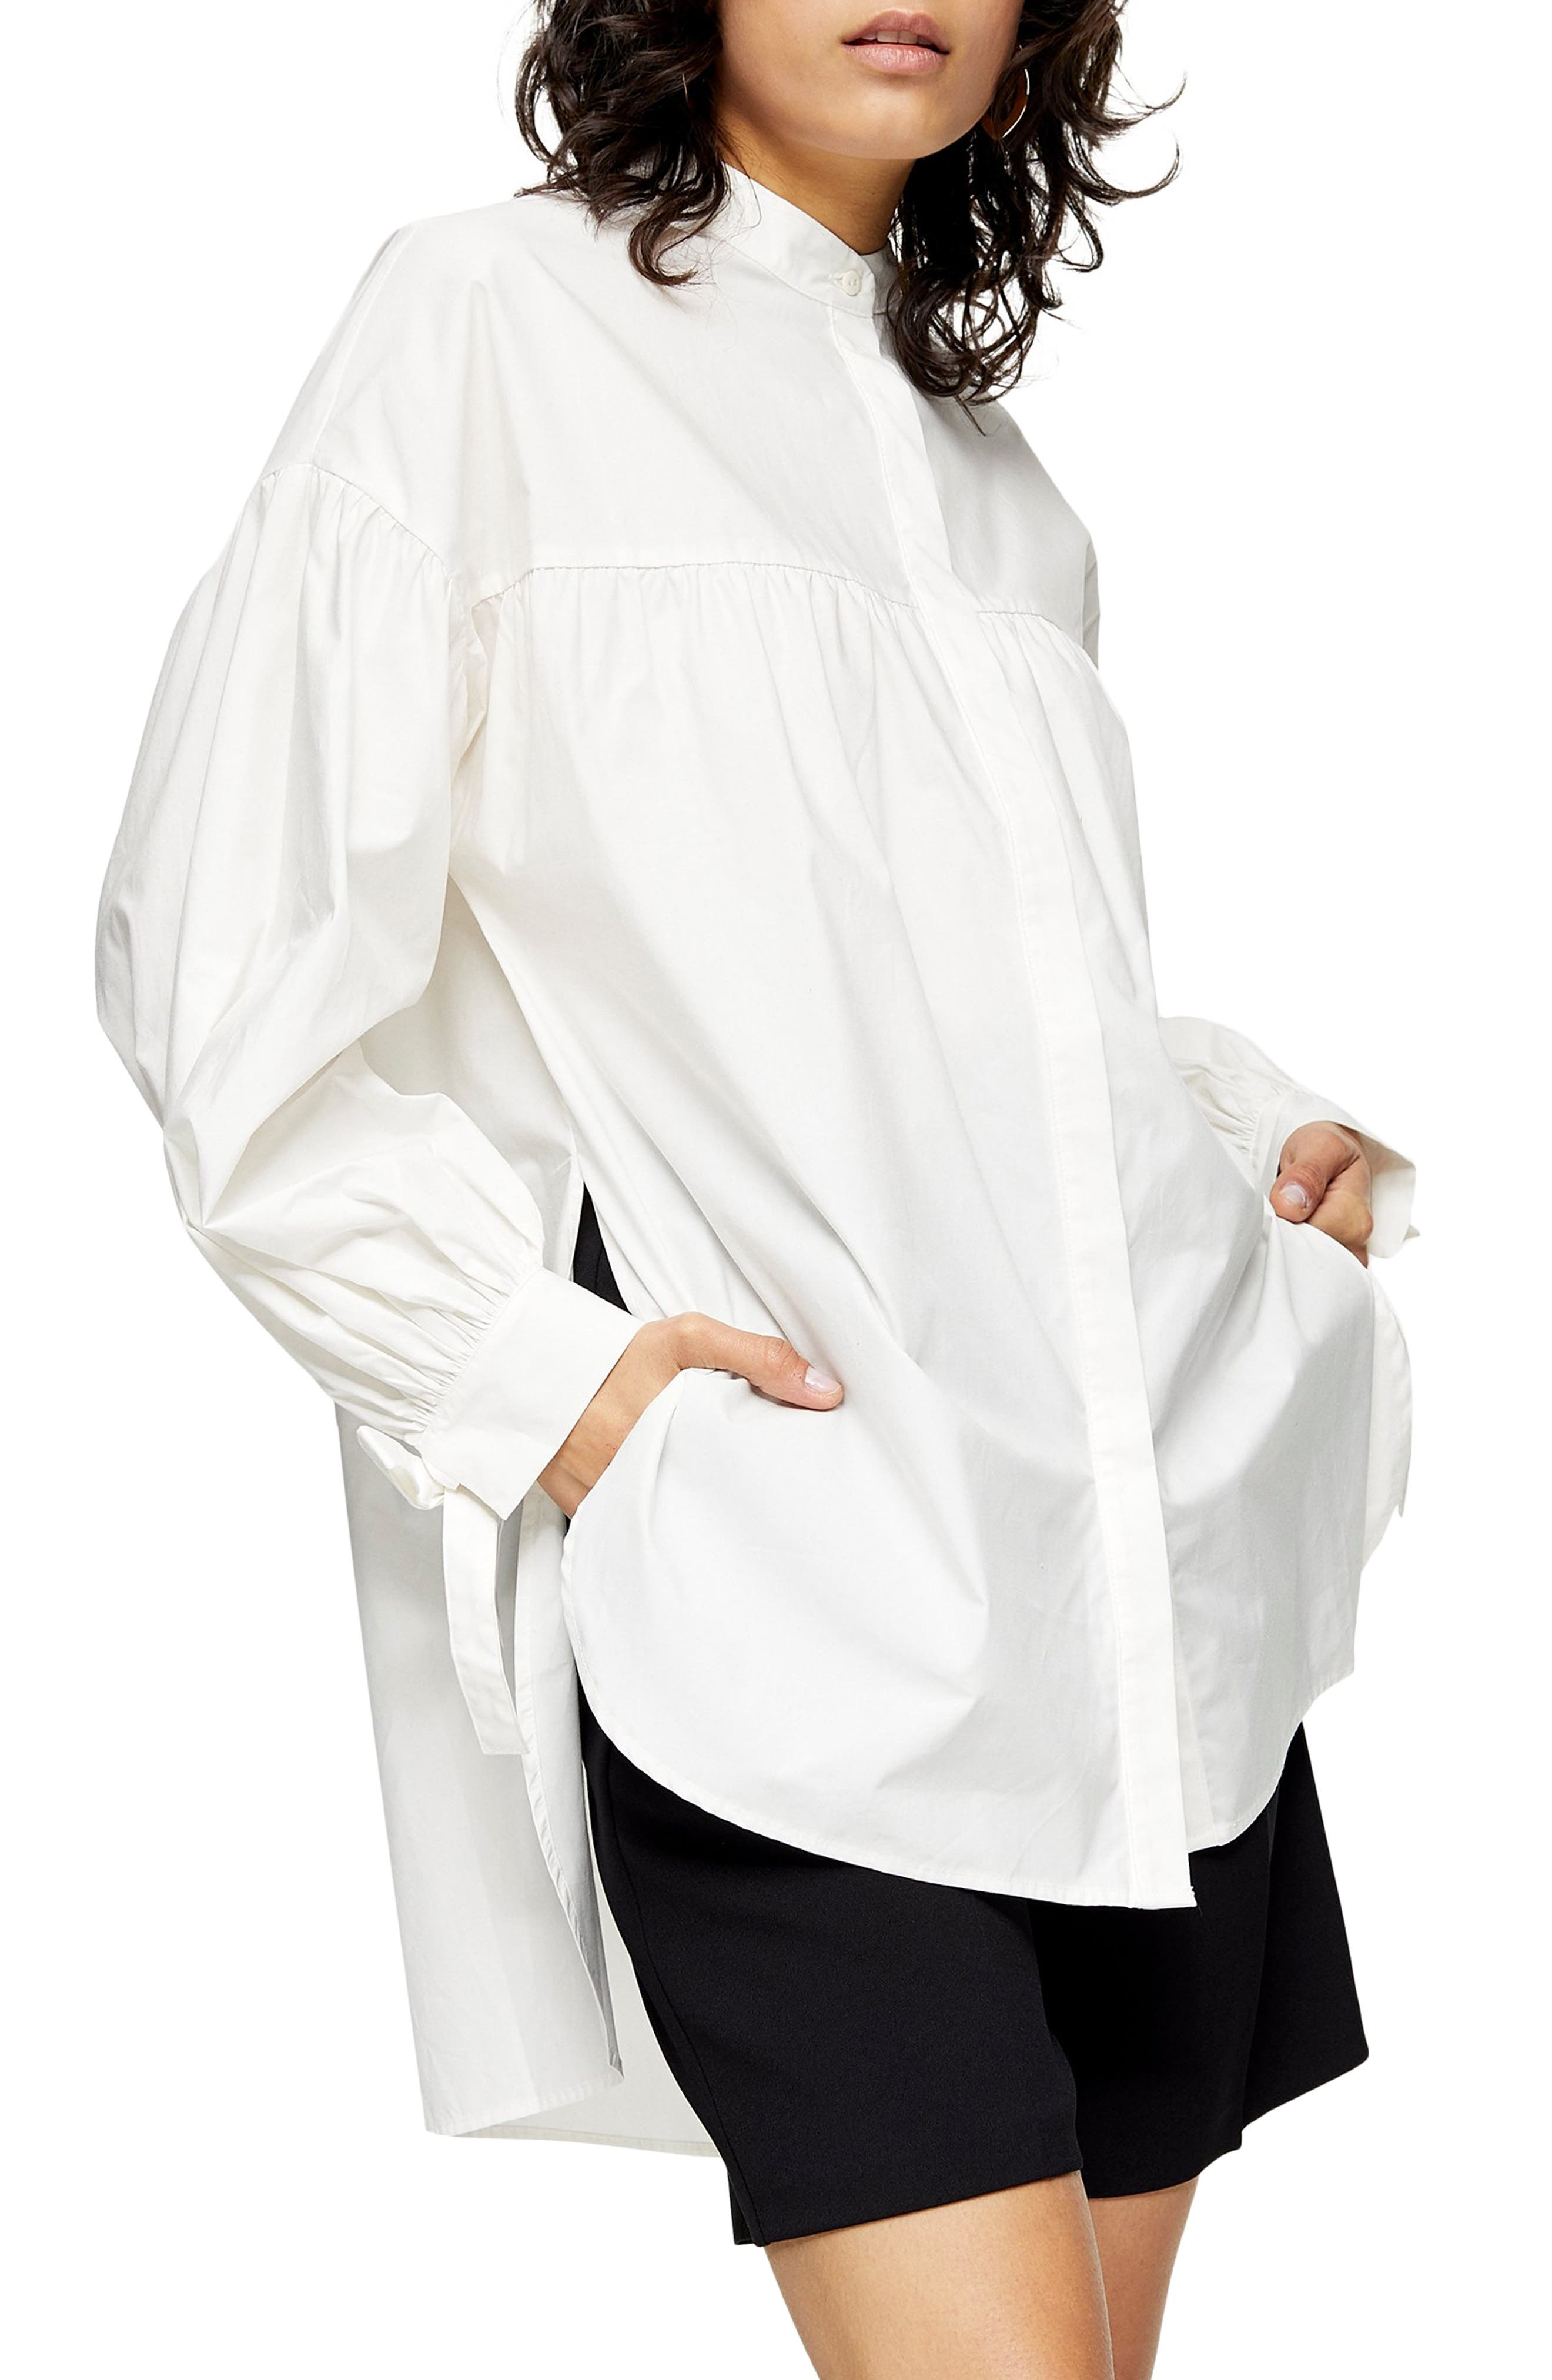 Victorian Blouses, Tops, Shirts, Sweaters Womens Topshop Oversize Babydoll Blouse $58.00 AT vintagedancer.com